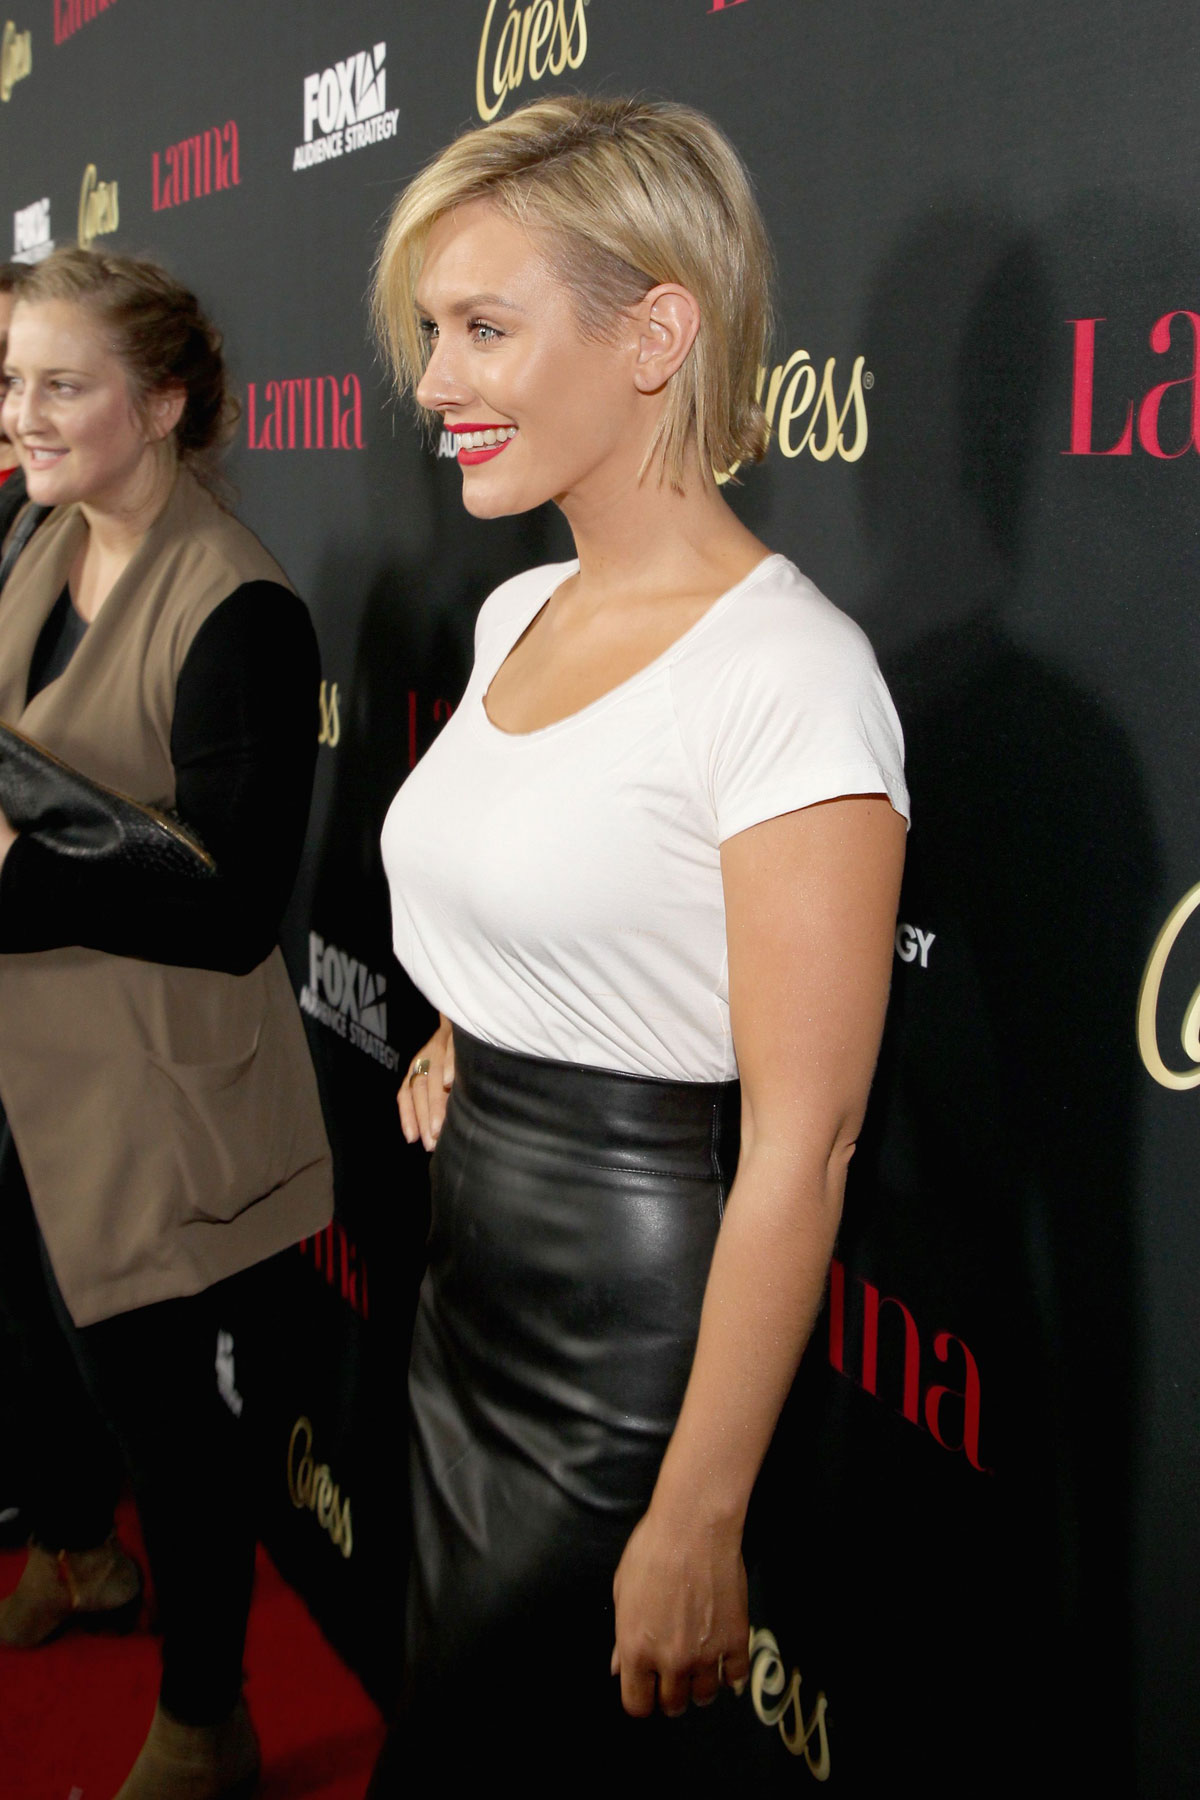 Nicky Whelan attends LATINA Magazine's 'Hollywood Hot List' party